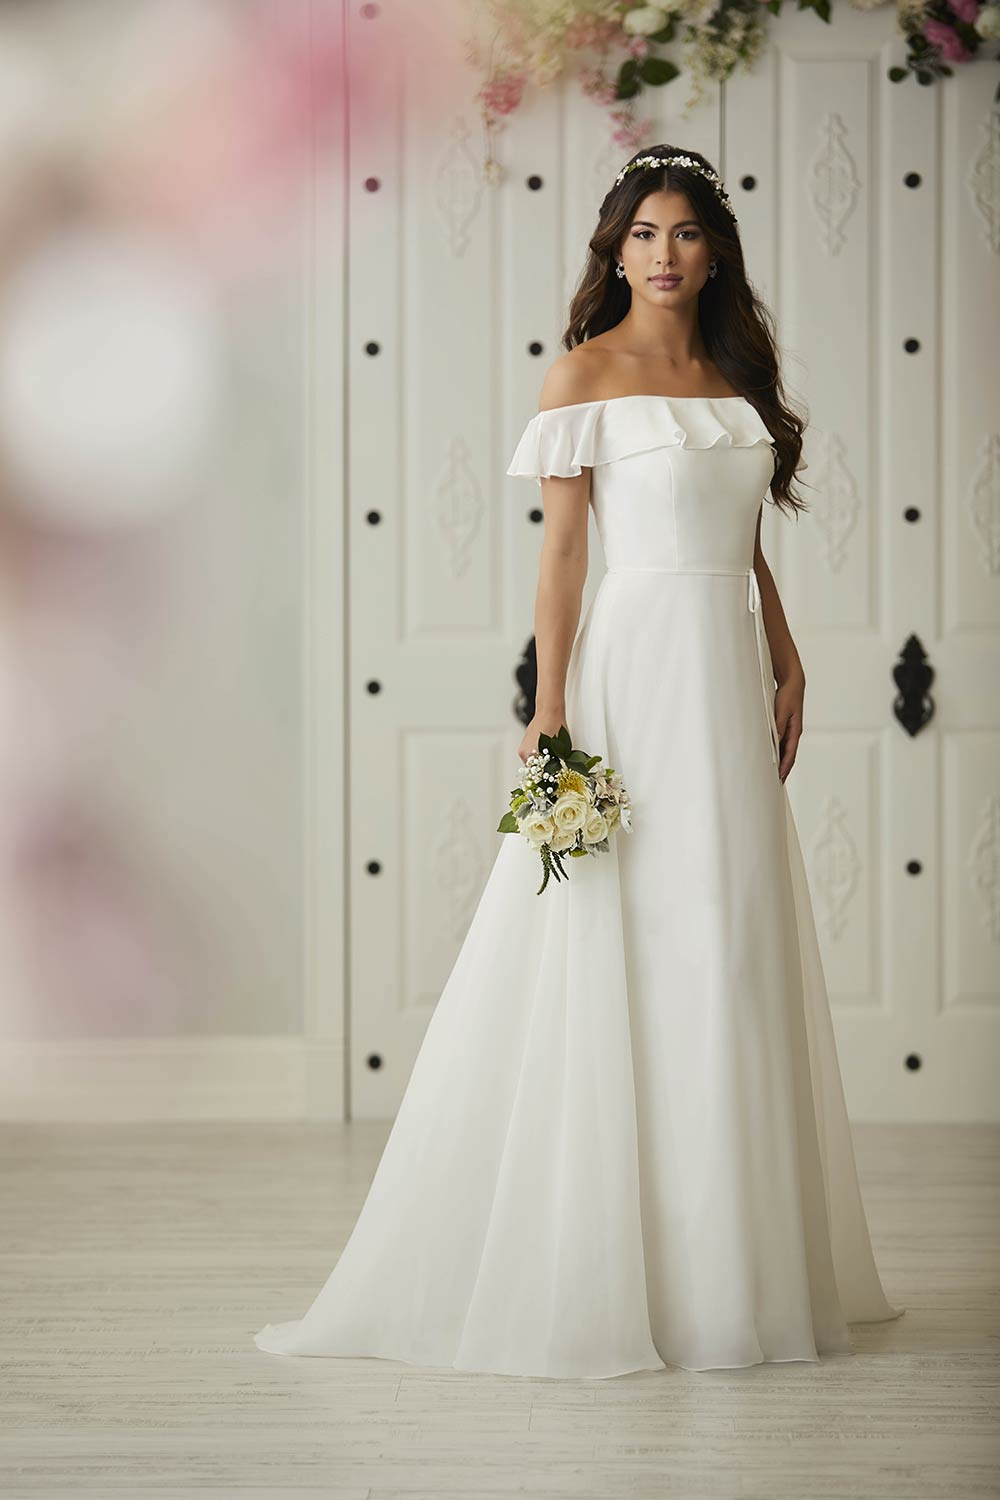 bridesmaid-dresses-jacquelin-bridals-canada-27314